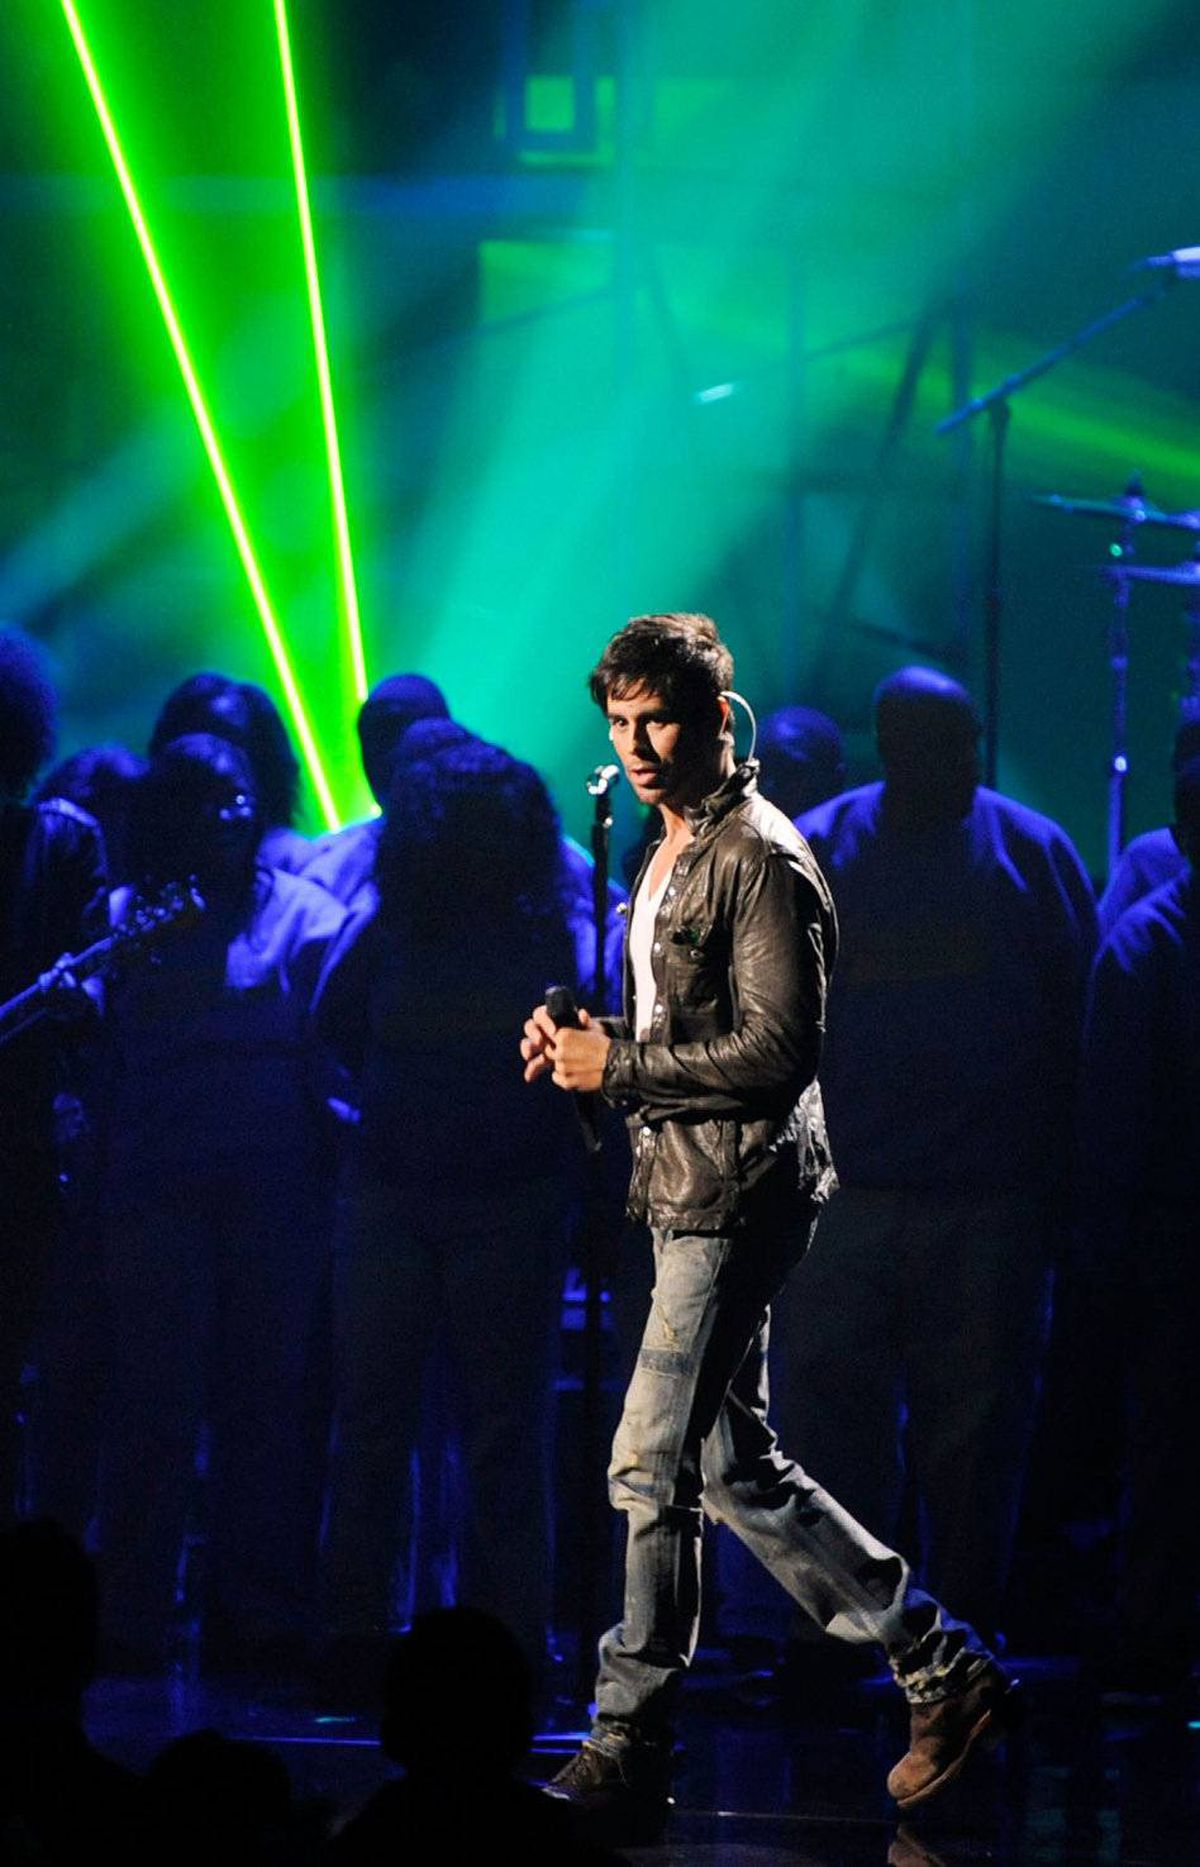 Singer Enrique Iglesias performs onstage at the 2011 American Music Awards held at Nokia Theatre L.A. LIVE on November 20, 2011 in Los Angeles, California.